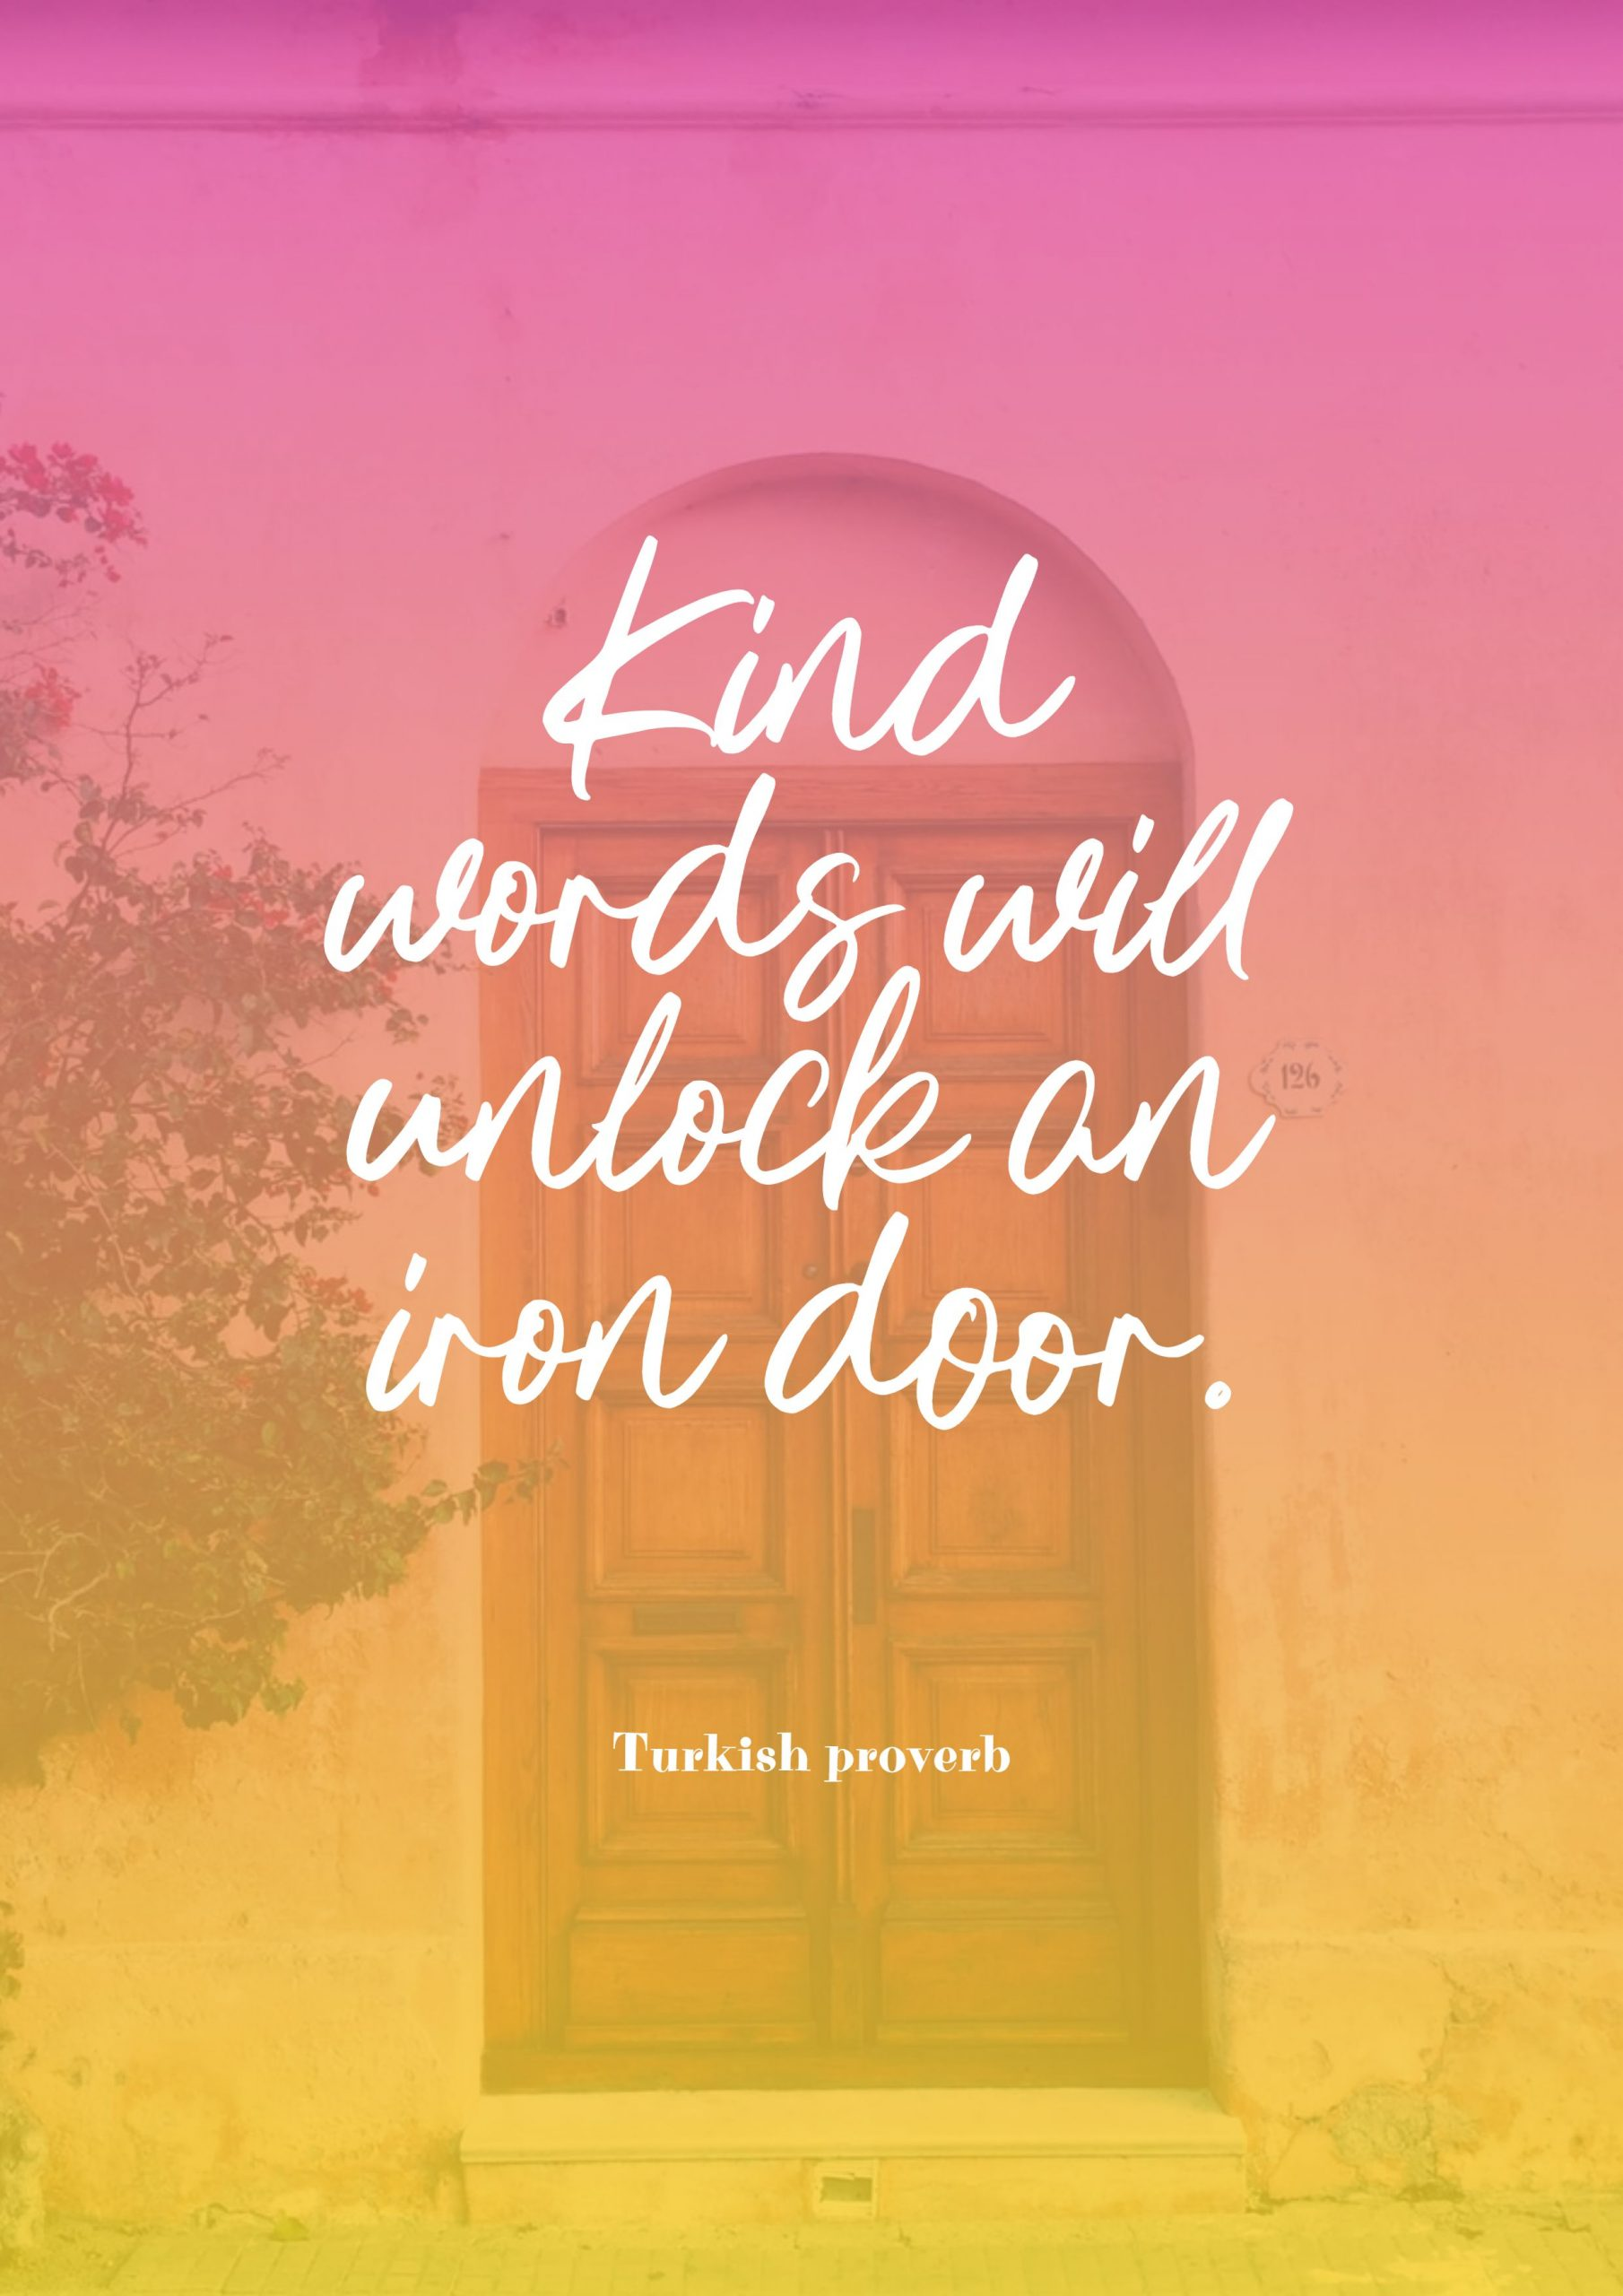 Quotes image of Kind words will unlock an iron door.